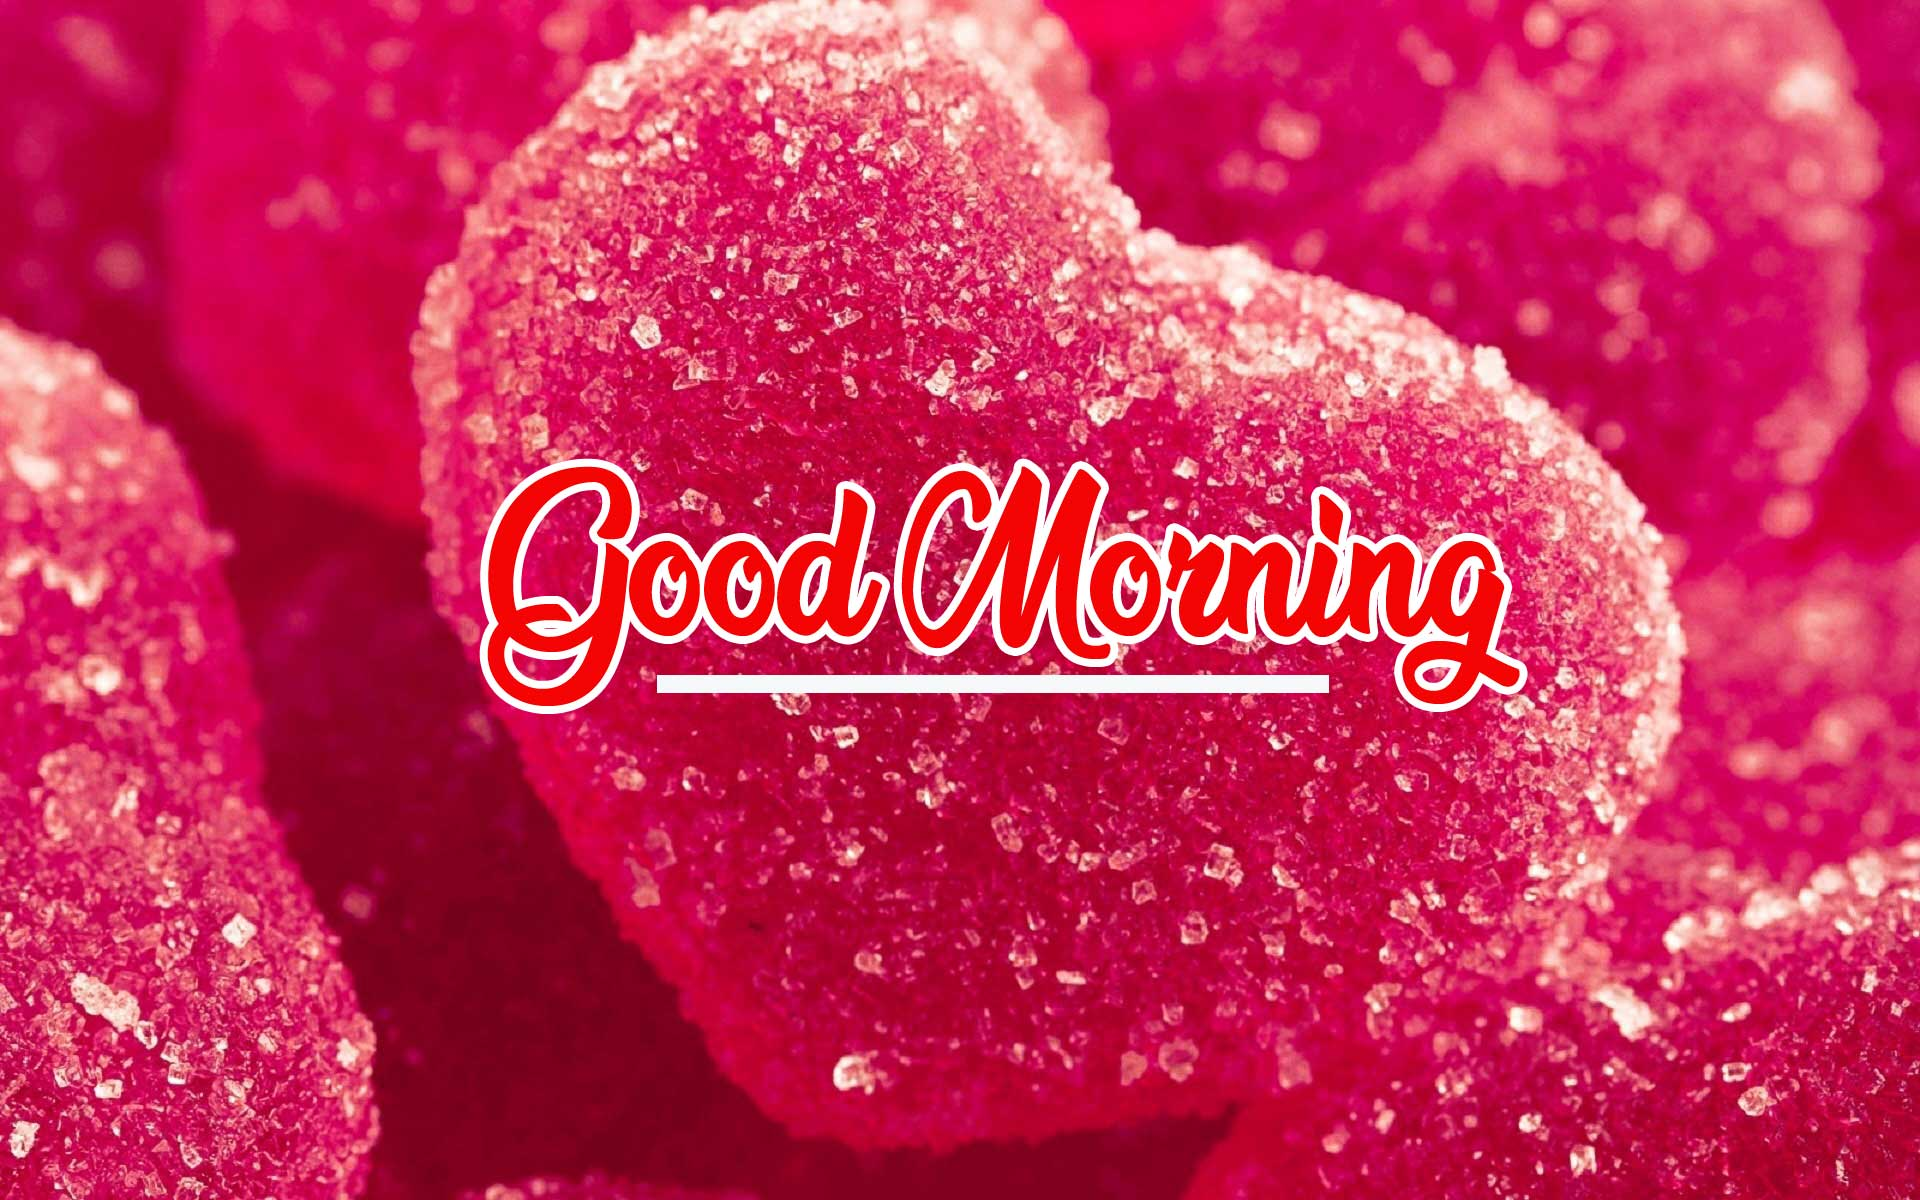 Dil Good Morning Images Wallpaper Free New Download